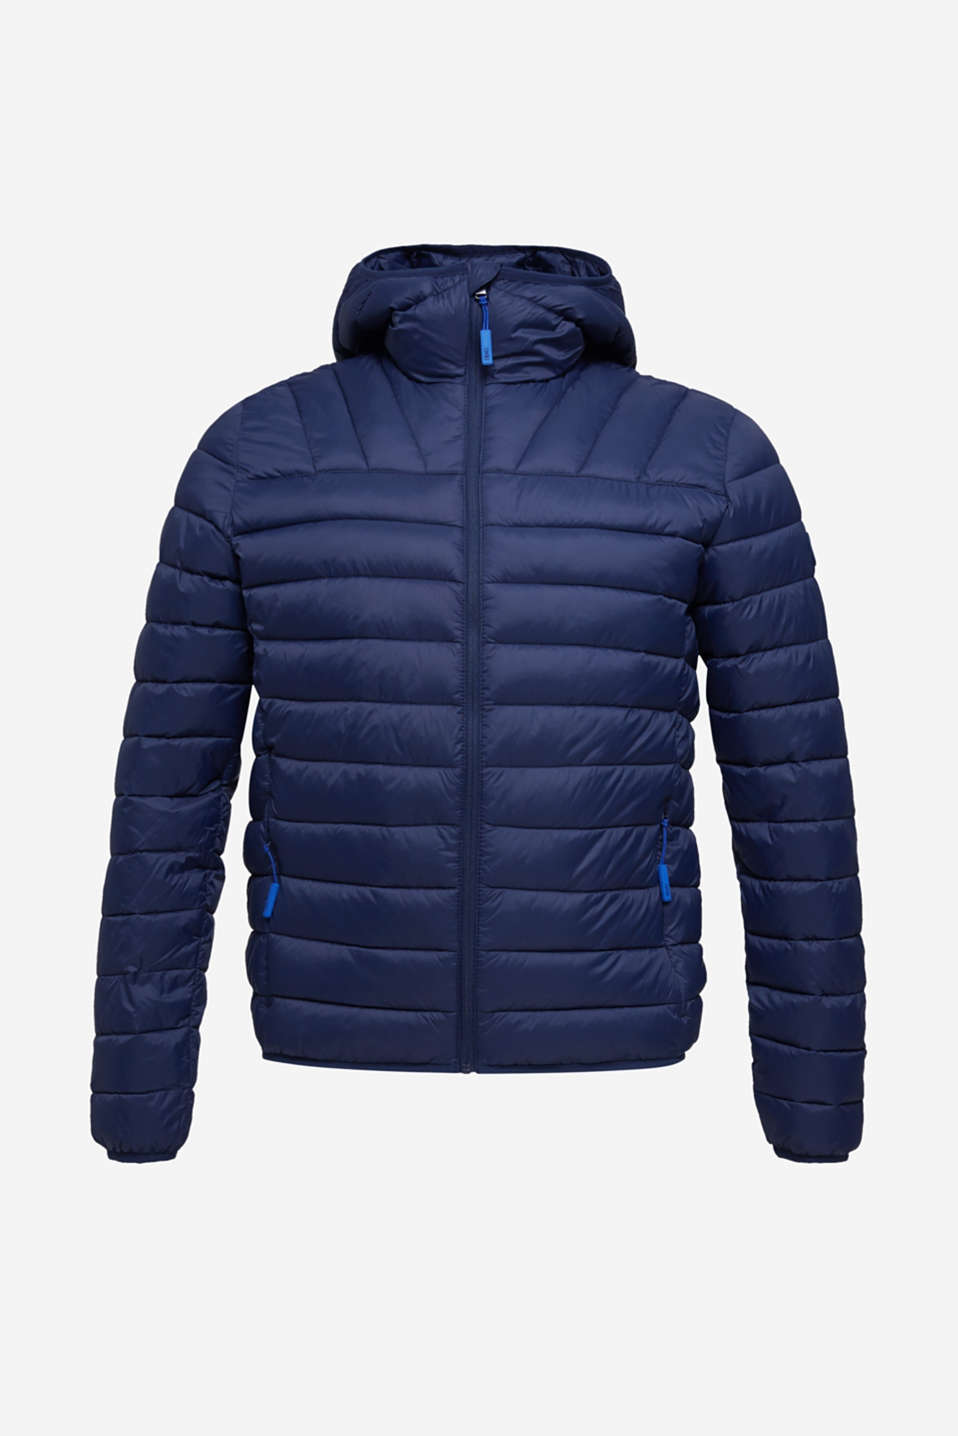 Jackets outdoor woven, DARK BLUE, detail image number 8